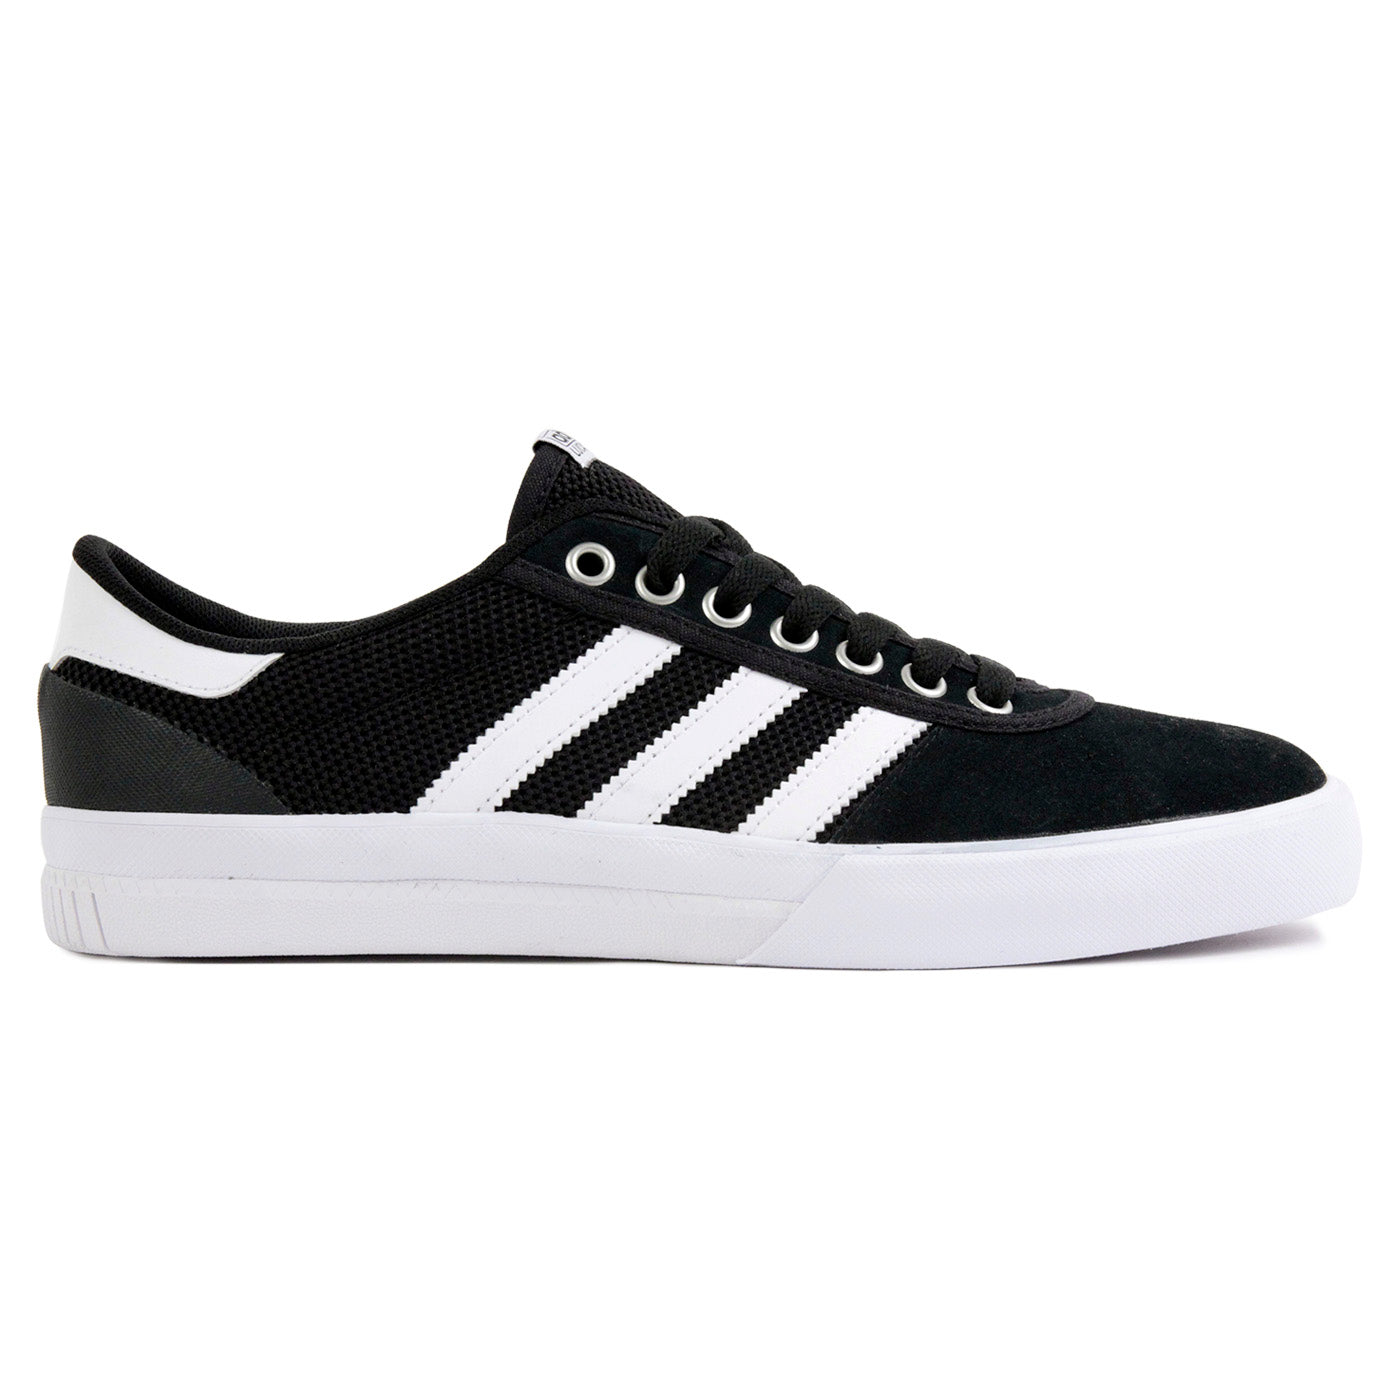 new concept 7cdd0 8077a Adidas Lucas Premiere ADV Shoes - Core Black   White   White